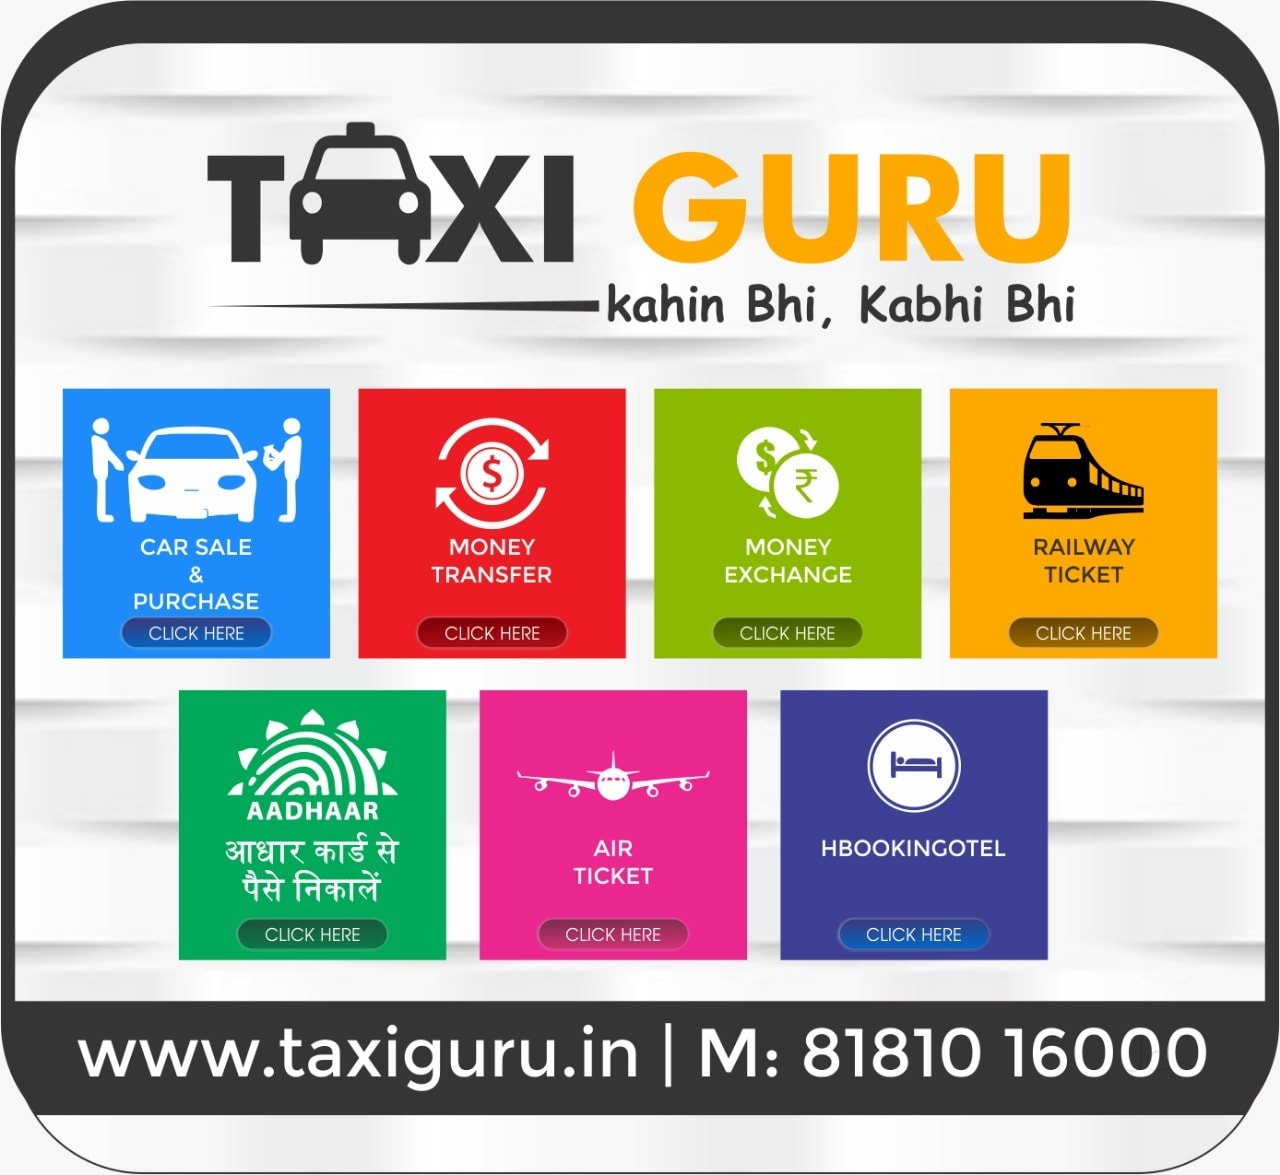 Top 30 Taxi Services in Karnal - Best Cab Booking - Justdial